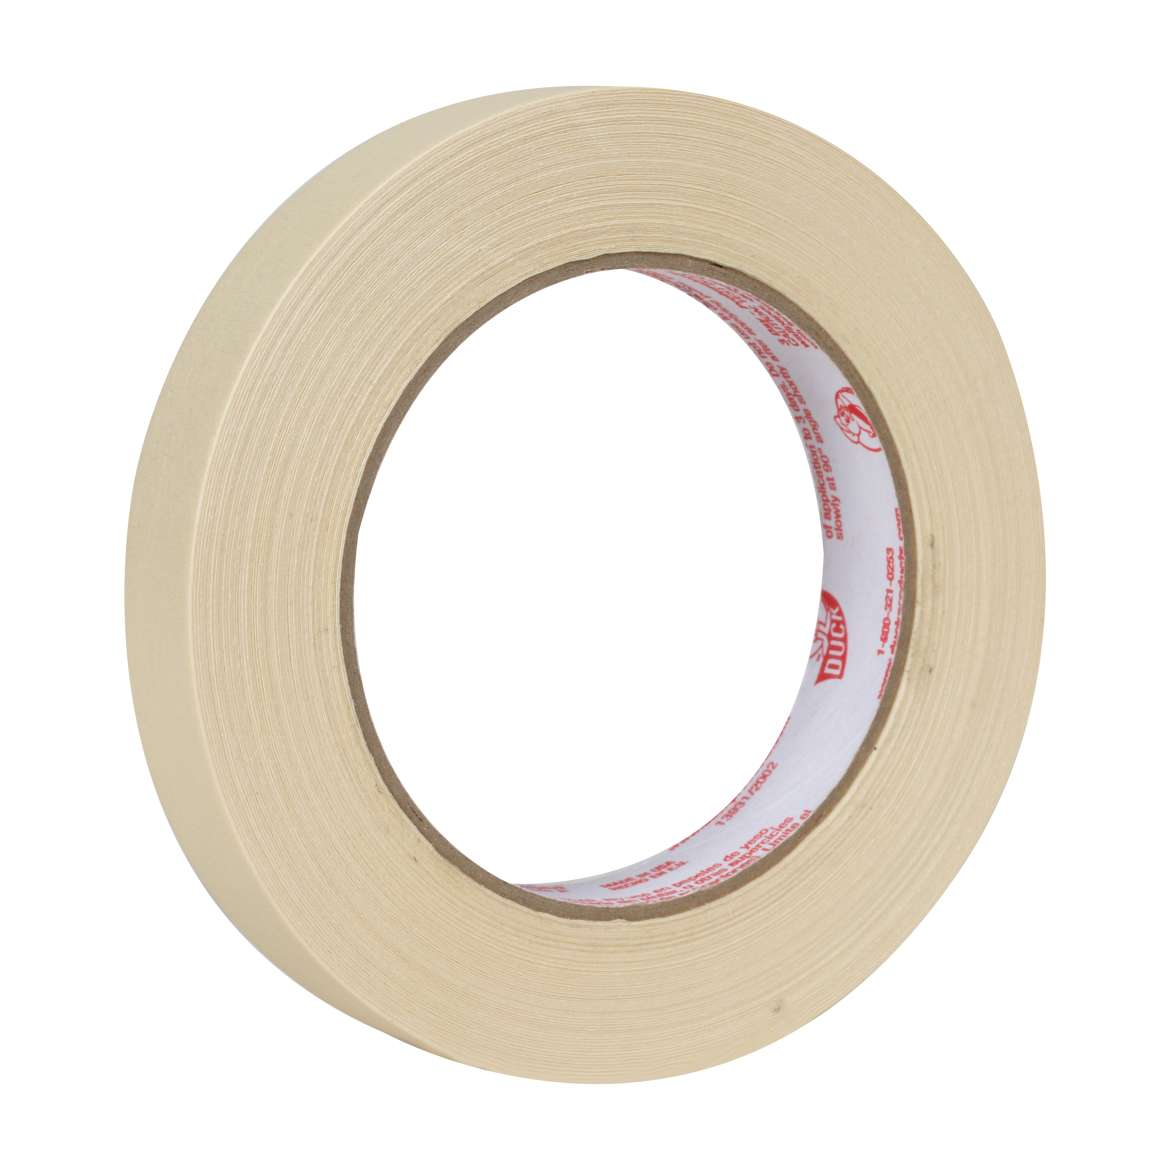 Professional Painter's Tape